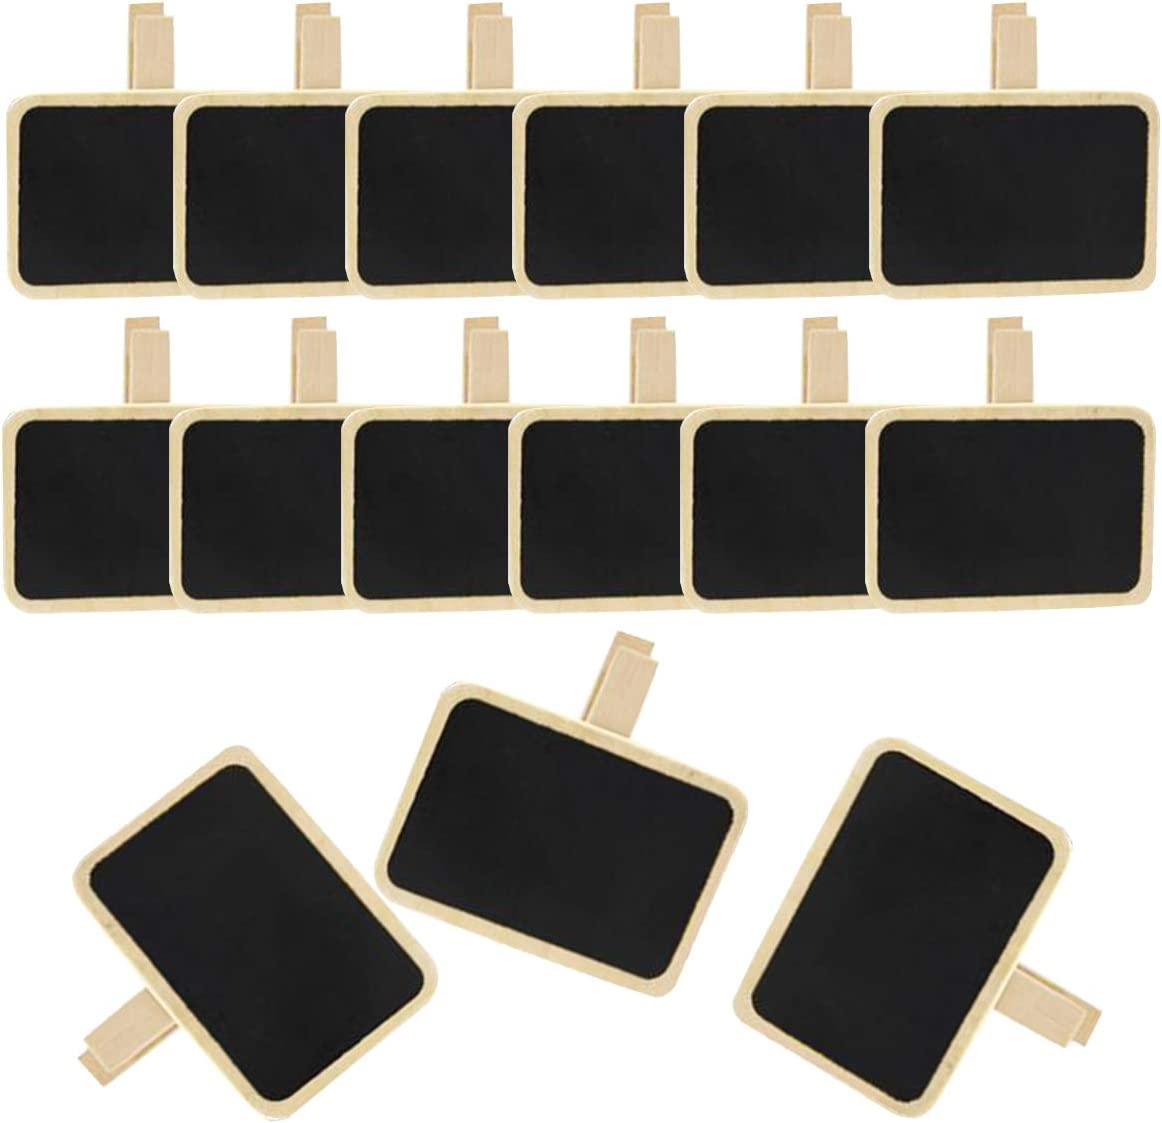 Pack of 24 Erasable Chalkboard Signs with Clip, Small Mini Chalkboard Label Clips Message Memo Boards Clips